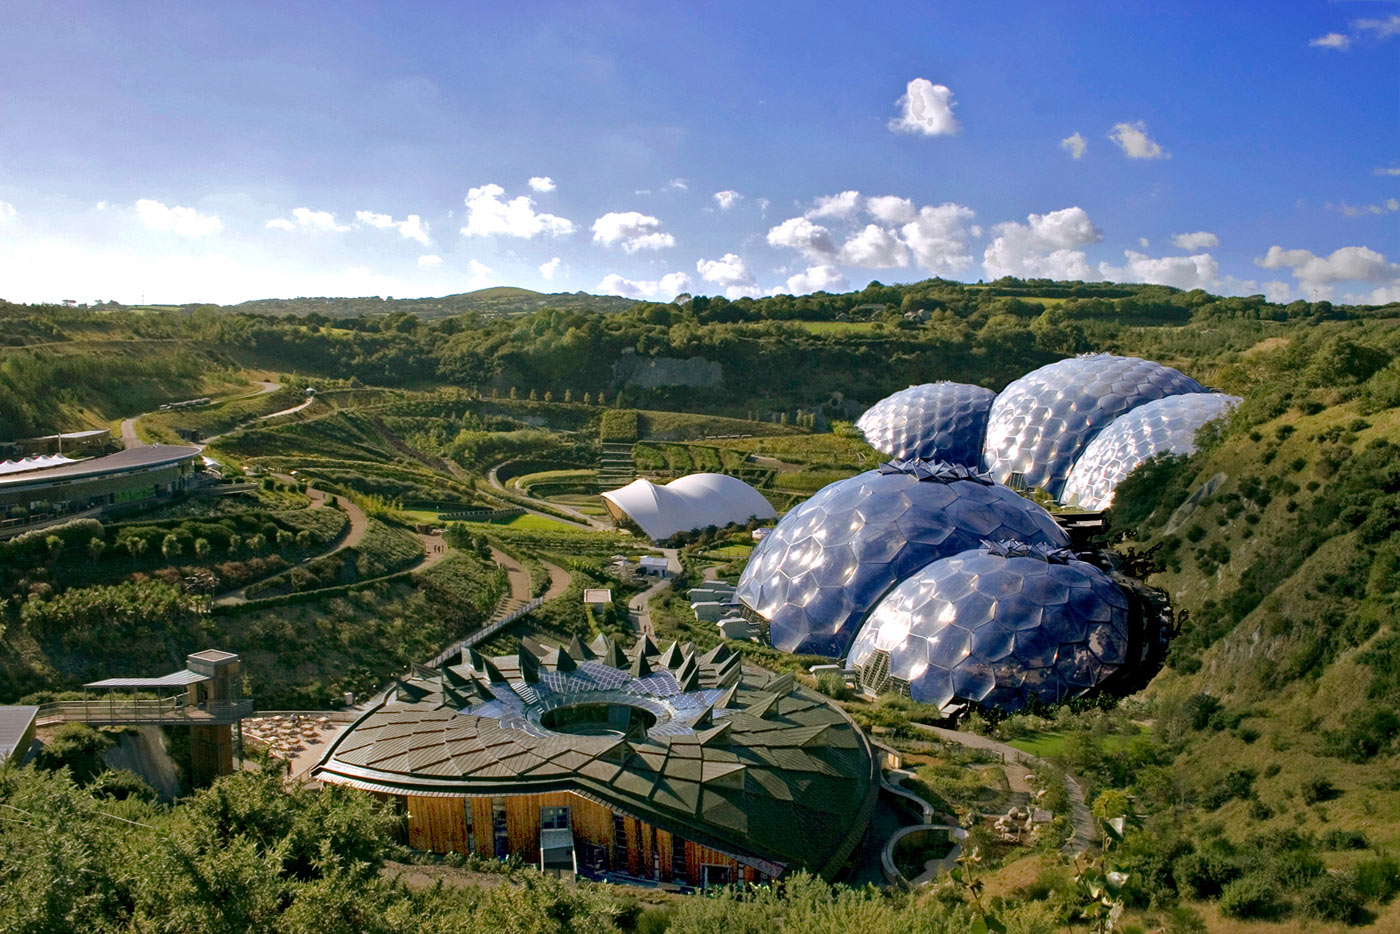 Looking down on the biomes at the Eden Project